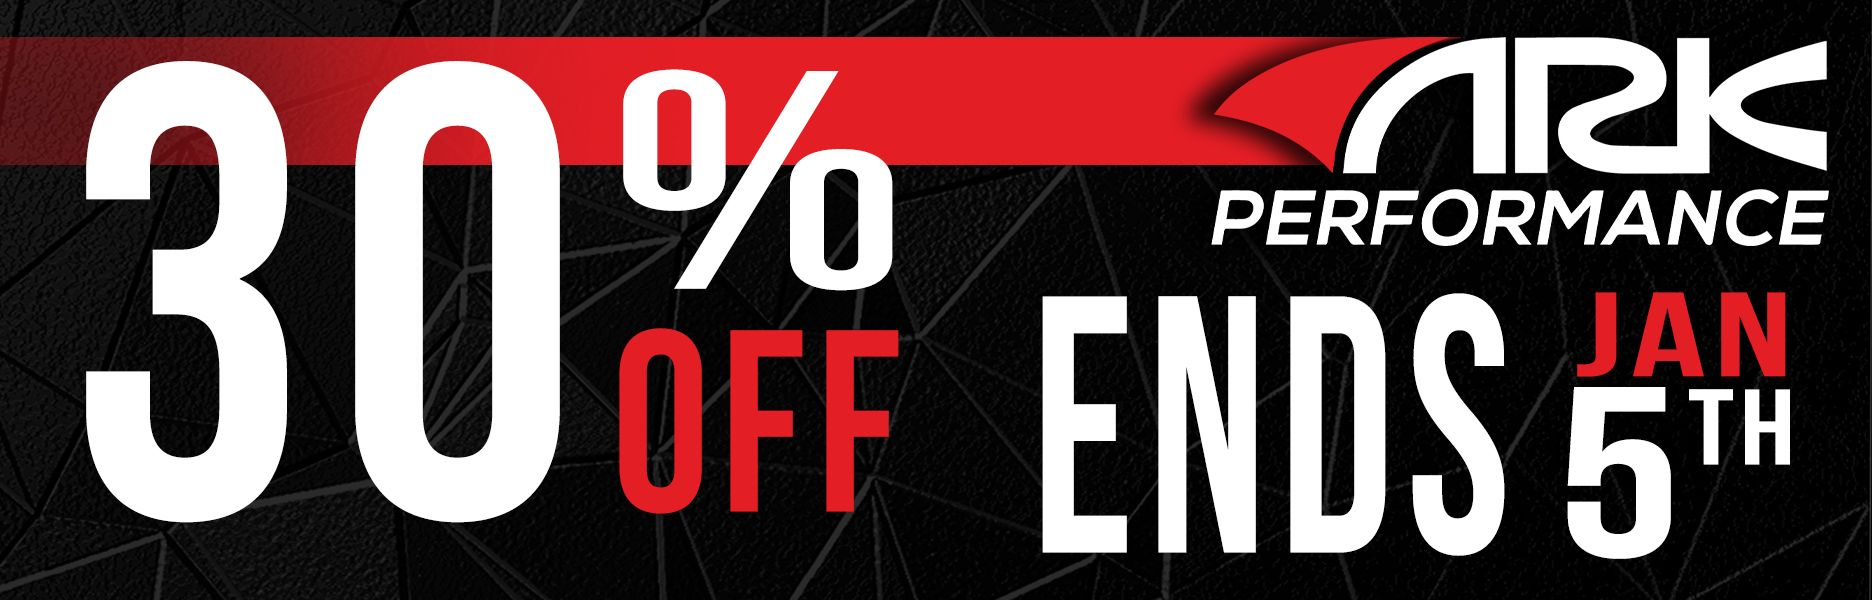 Ark Performance End of the Year Sale